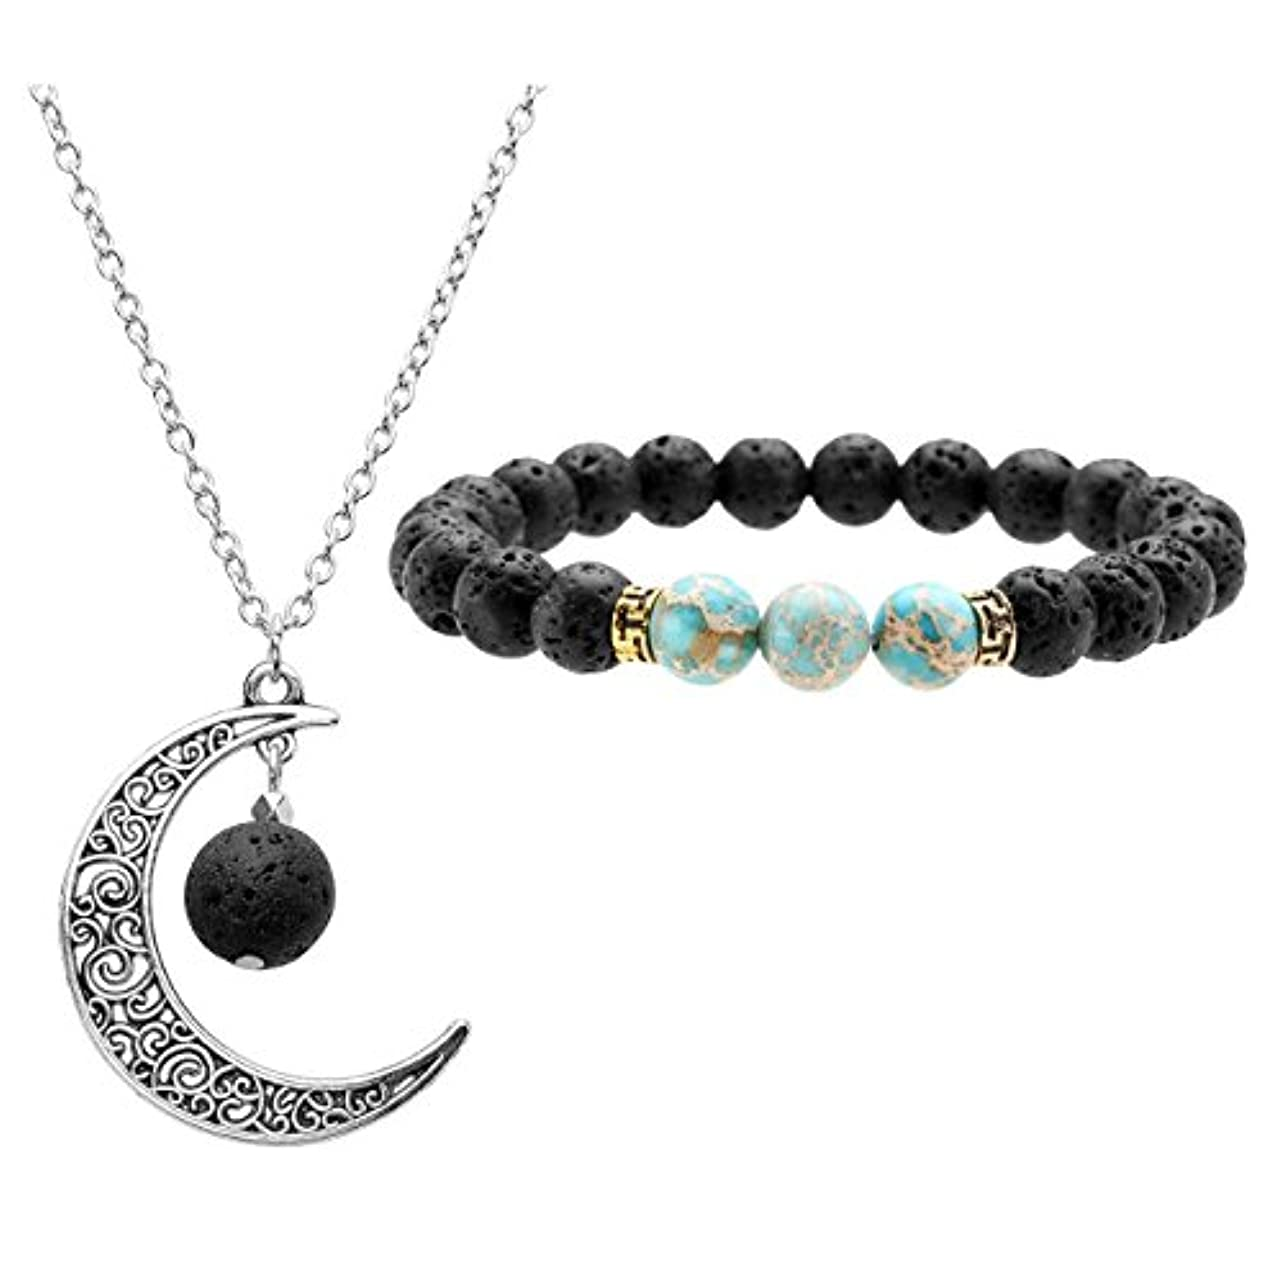 聴覚障害者カウンターパート定義するJOVIVI Lava Stone Aromatherapy Essential Oil Diffuser Necklace Bracelet Set- Crescent Moon Jewellery